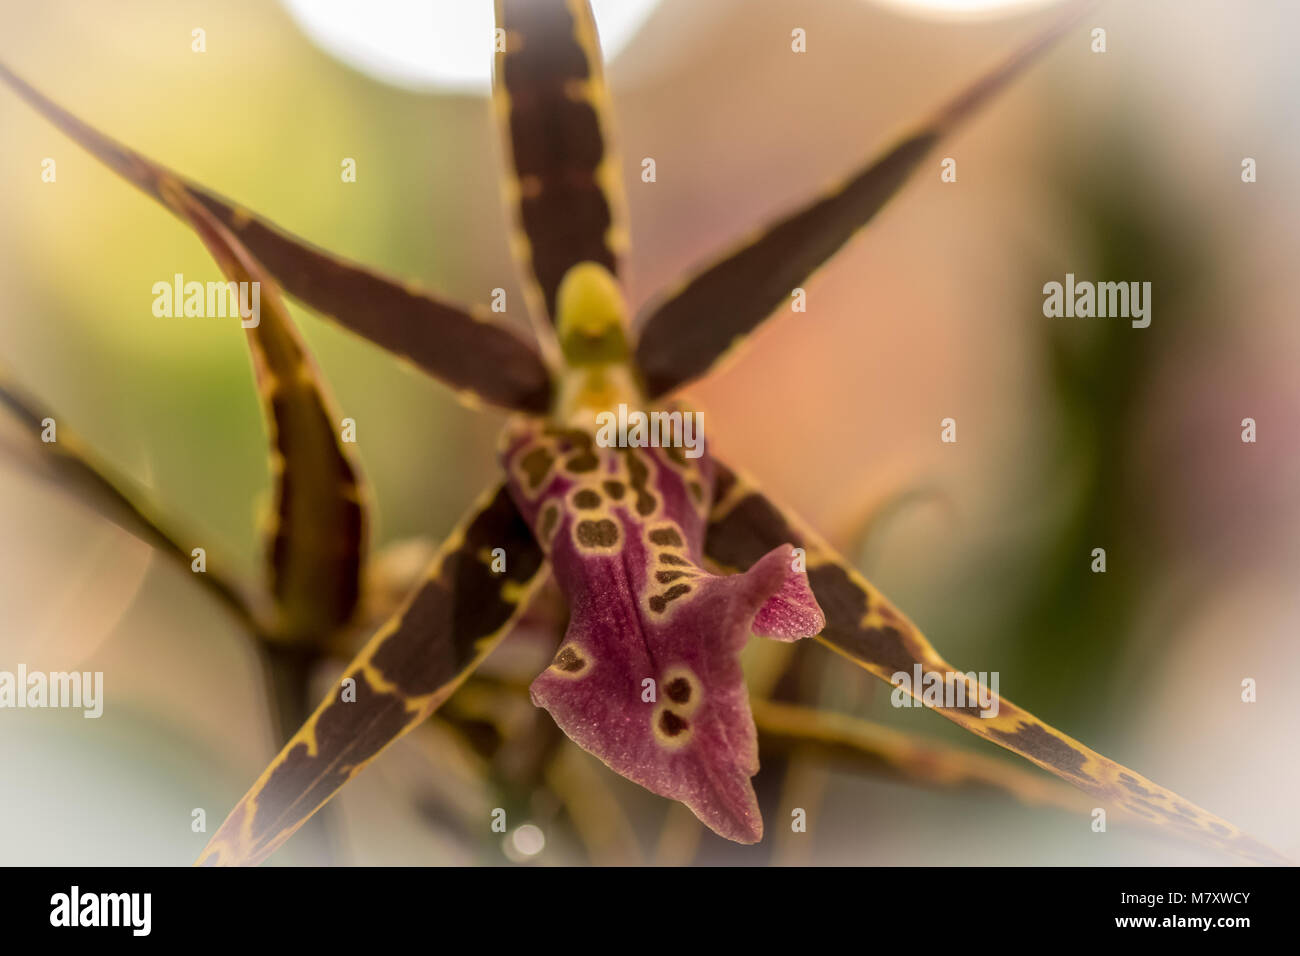 Intergeneric Orchid - Stock Image